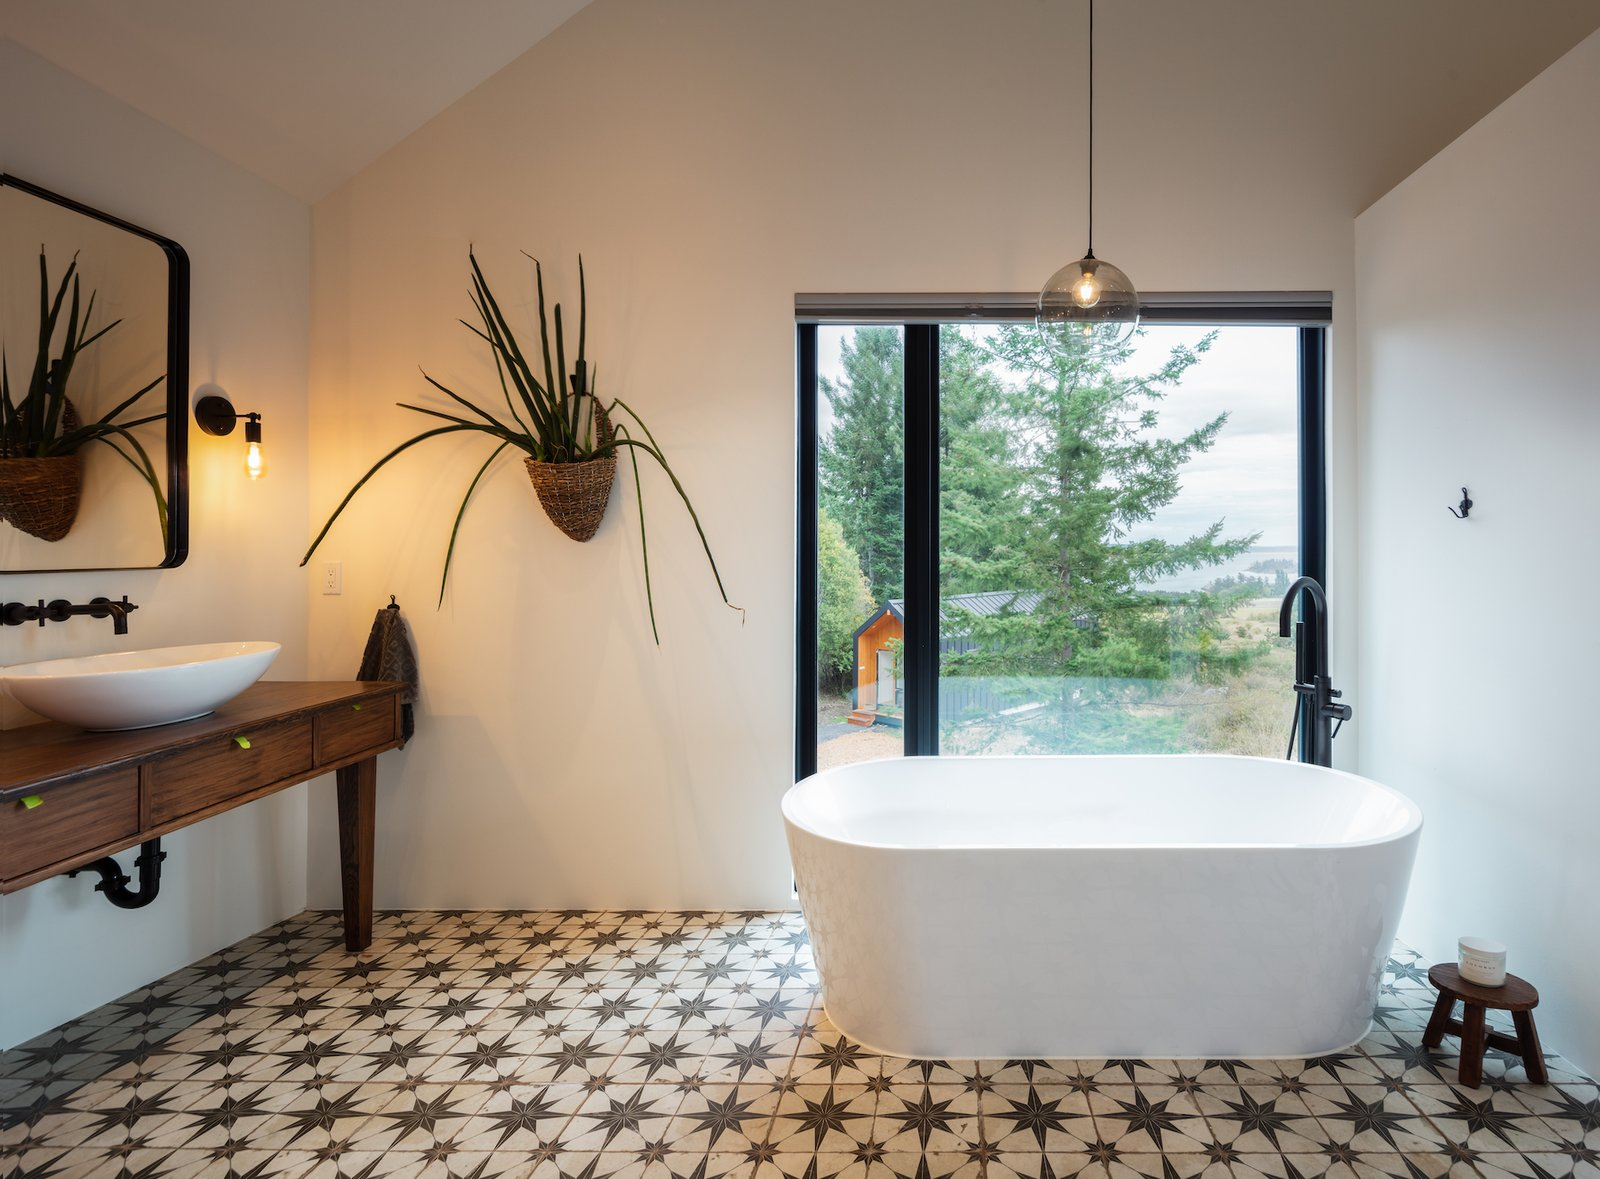 Bathroom of Saltwater Farm main house by RAD LAB.